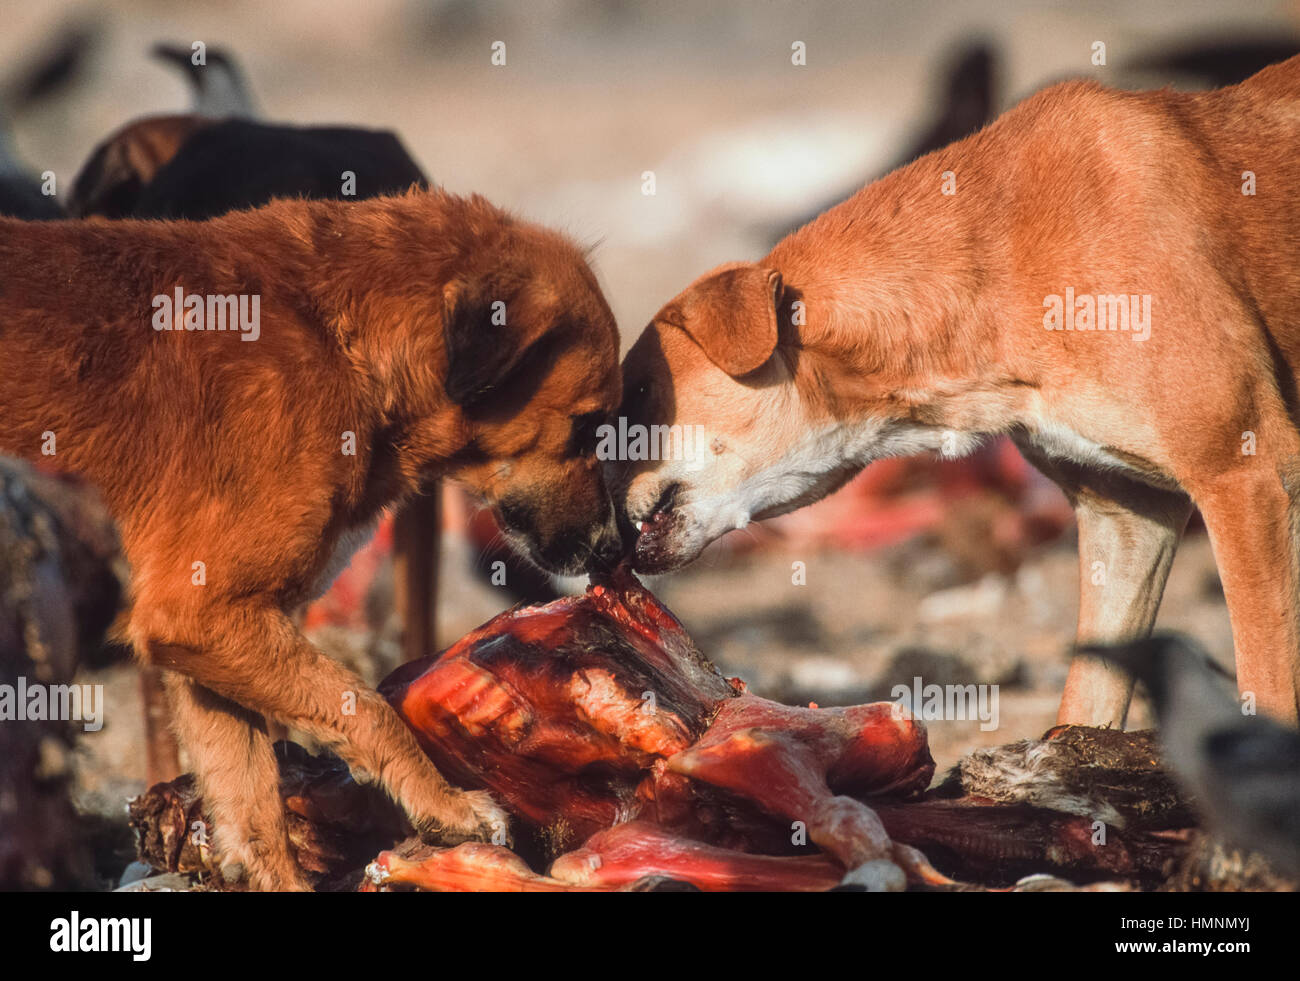 Feral dogs scavenging around an animal waste dump, Rajasthan, India - Stock Image